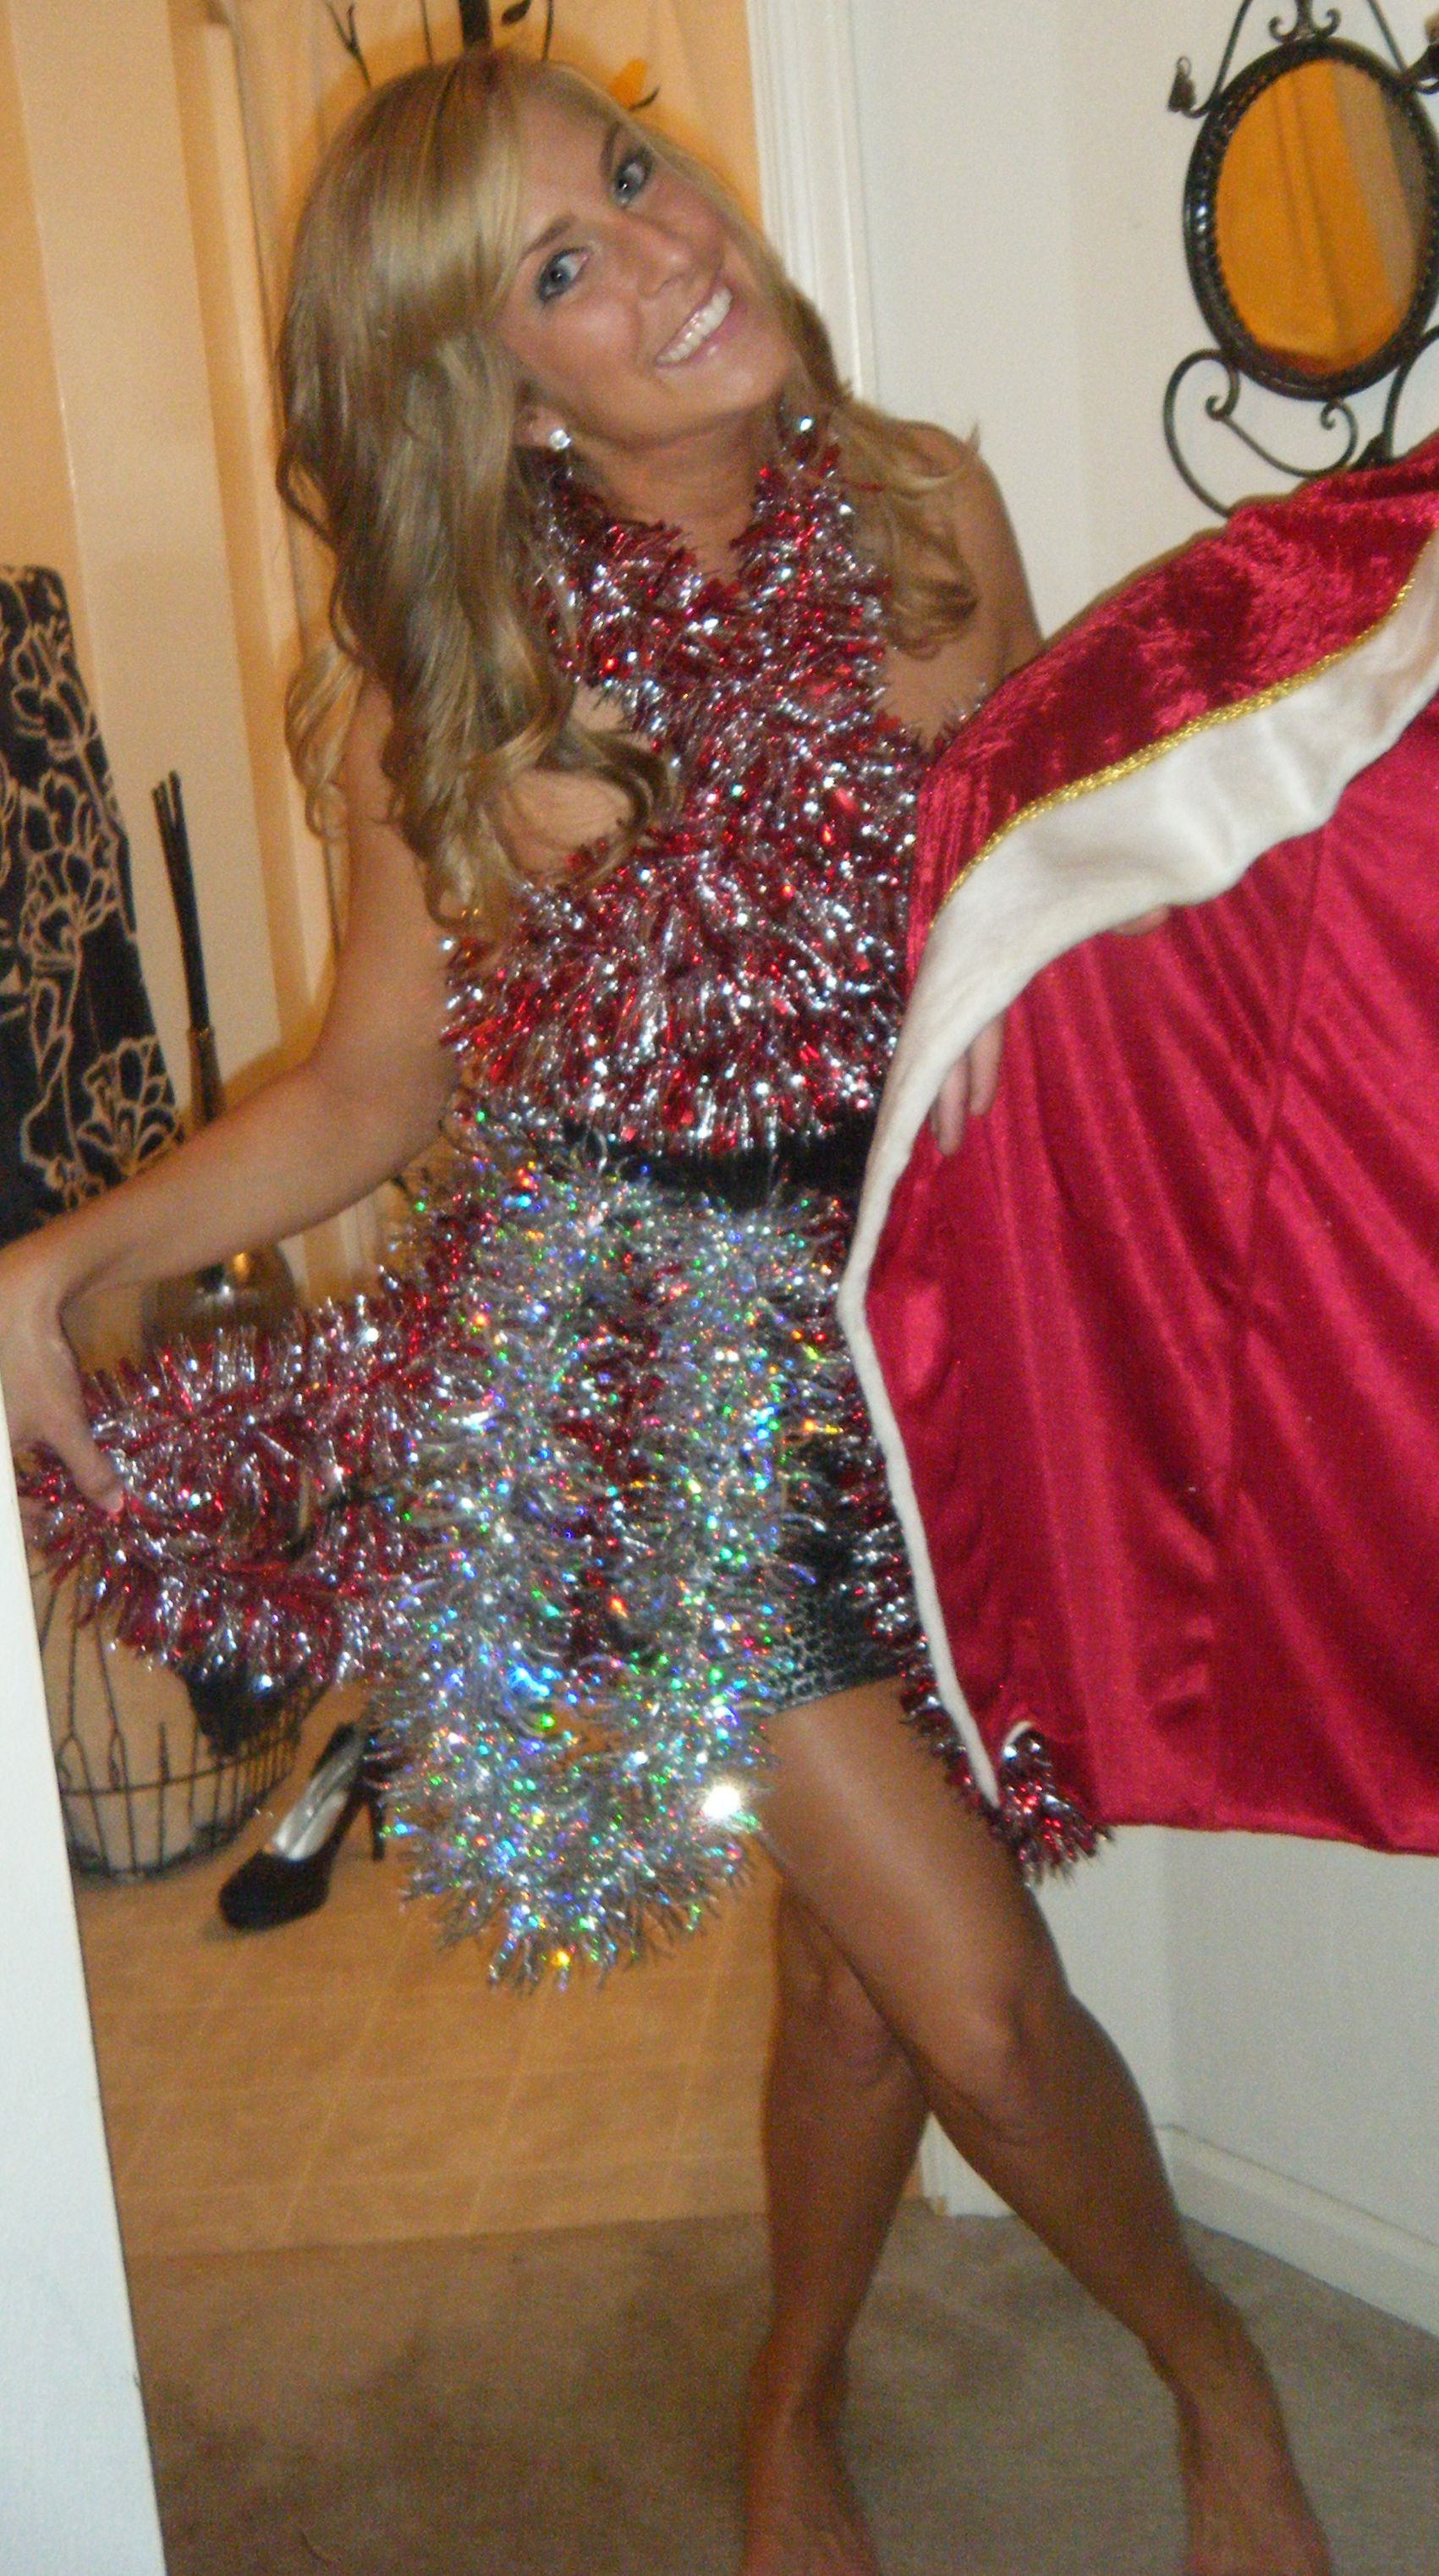 Tacky Christmas Outfits.So So Many Surprisingly Silly Christmas Outfits For The